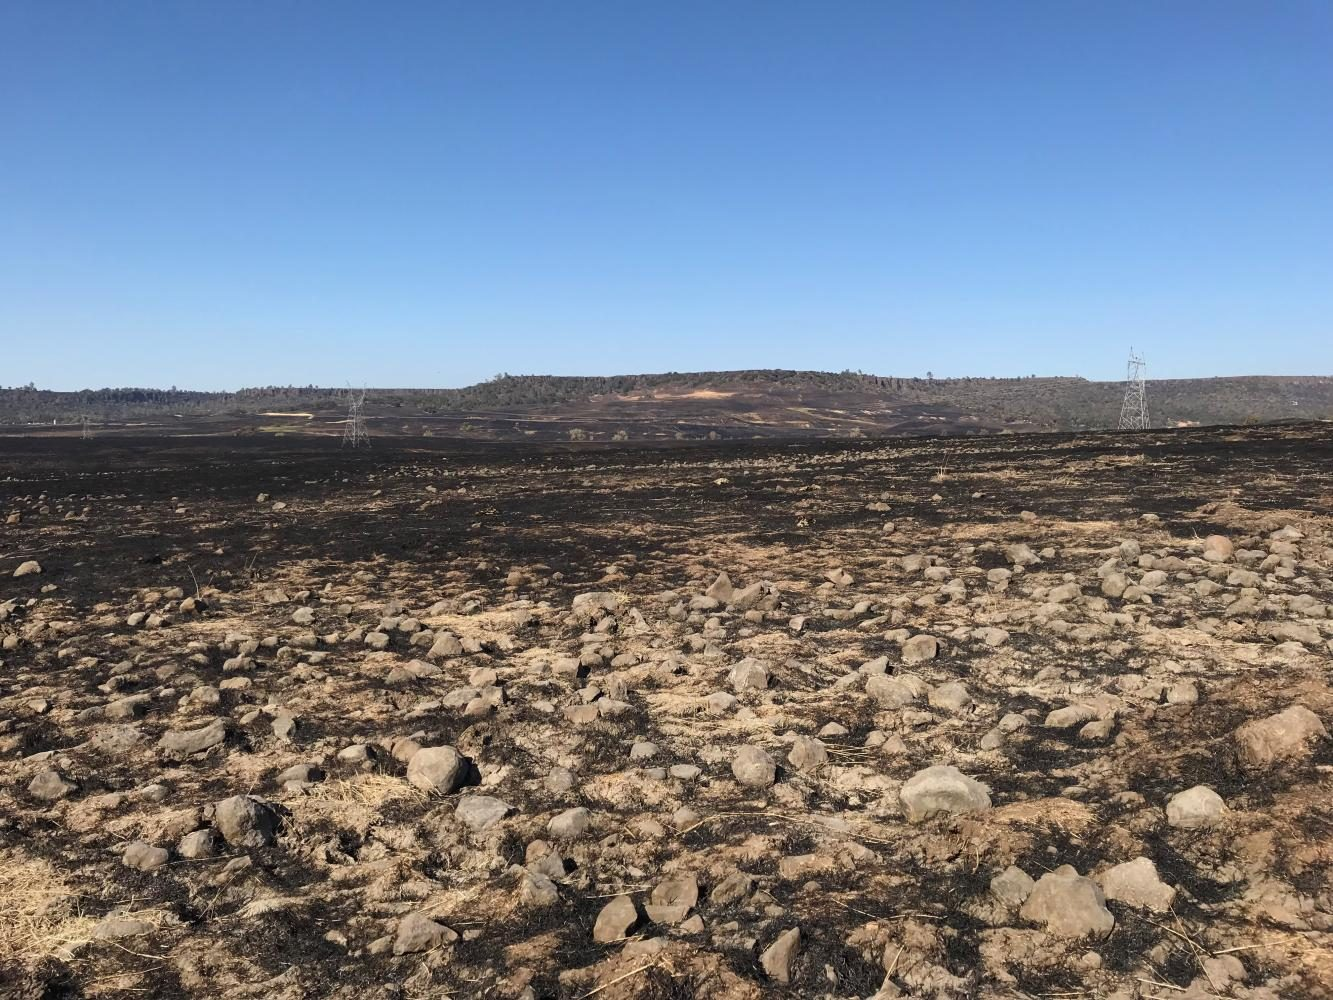 Cherokee fire burned across table mountain and came close to highway 70. Photo credit: Christian Solis